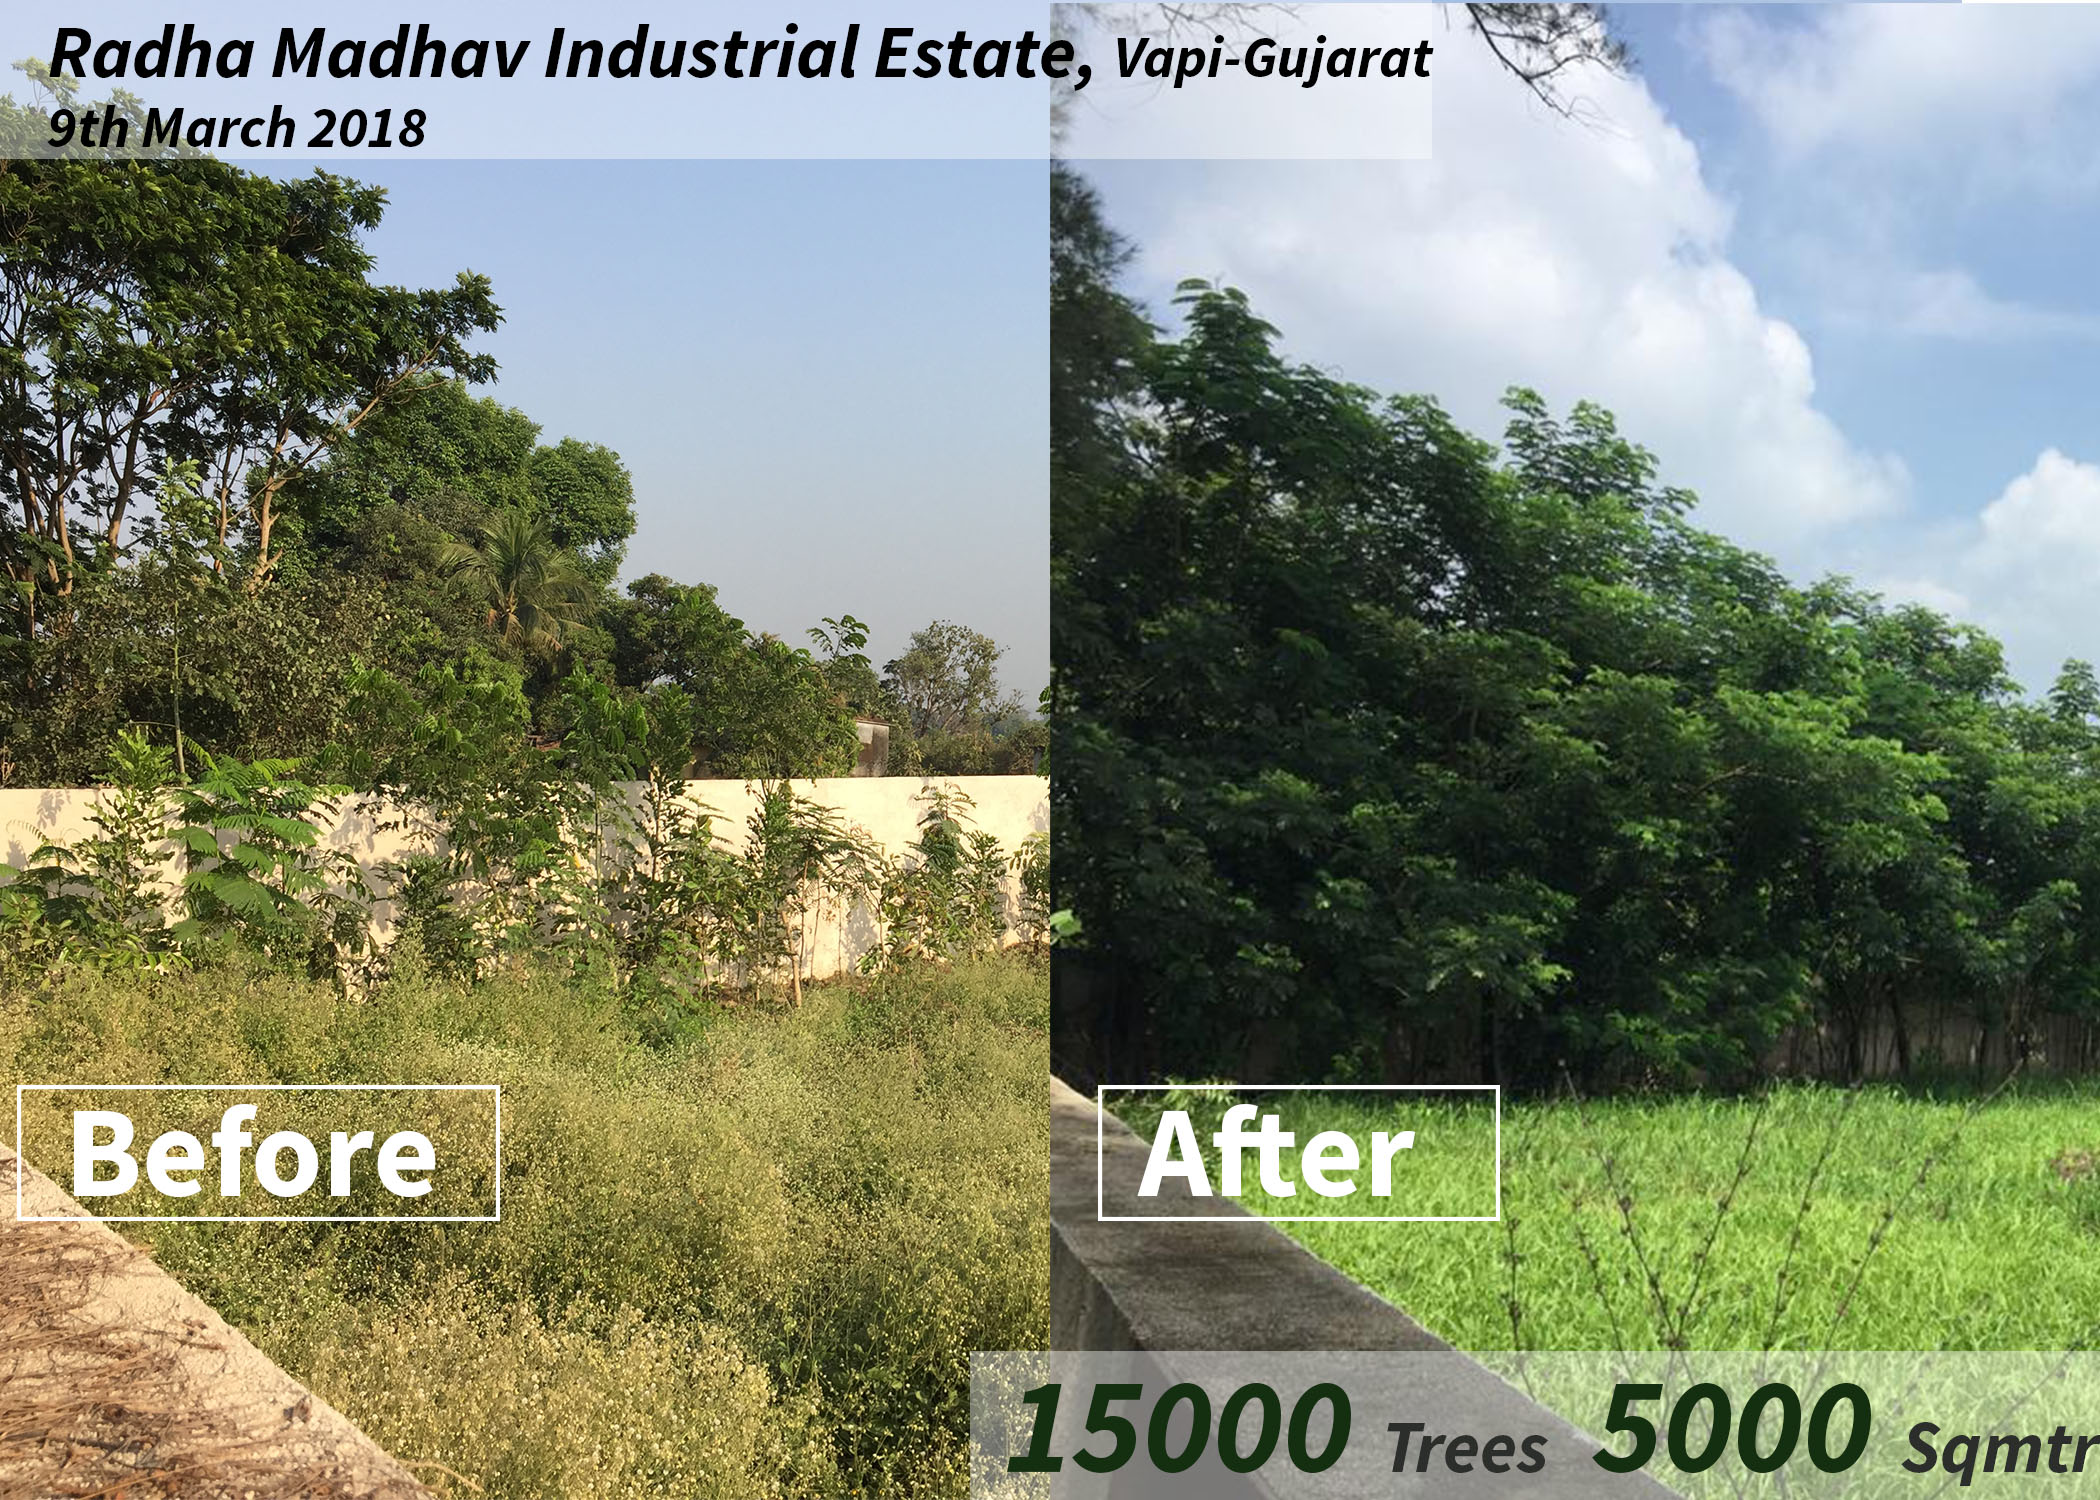 Radha Madhav Steel before and after